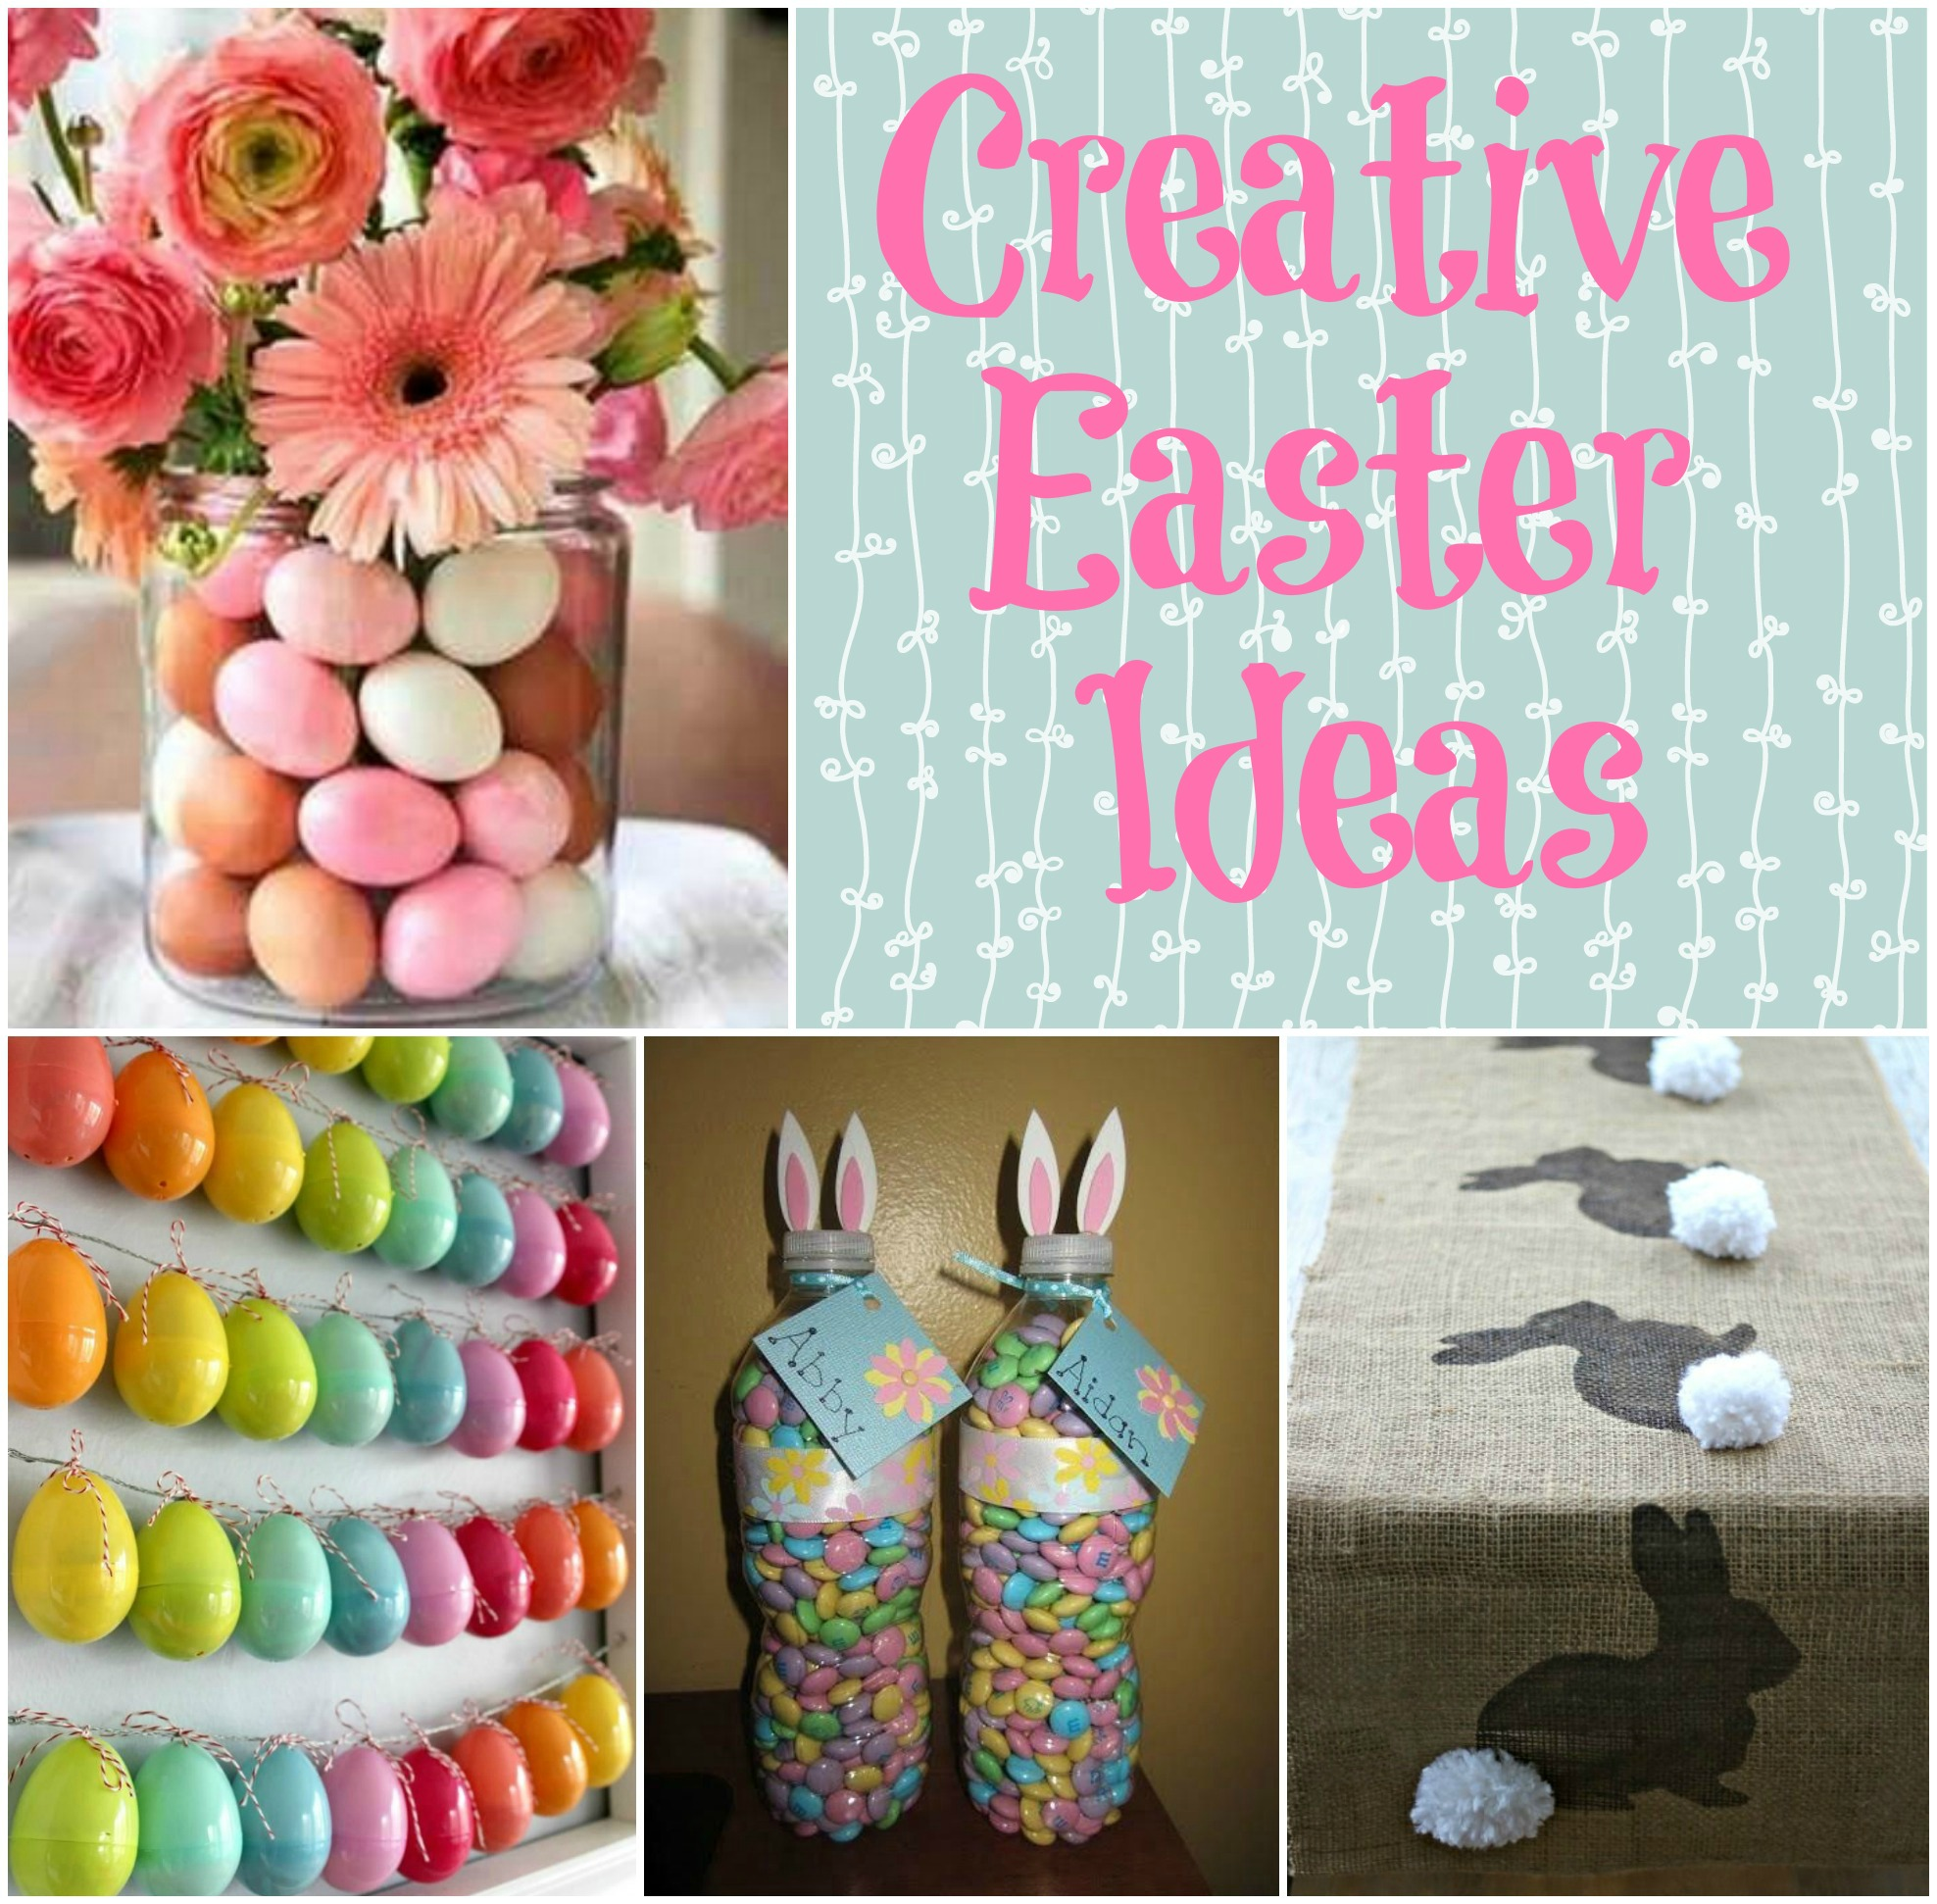 Rustic Wedding Cake Display: 25 Creative Easter Projects & Ideas